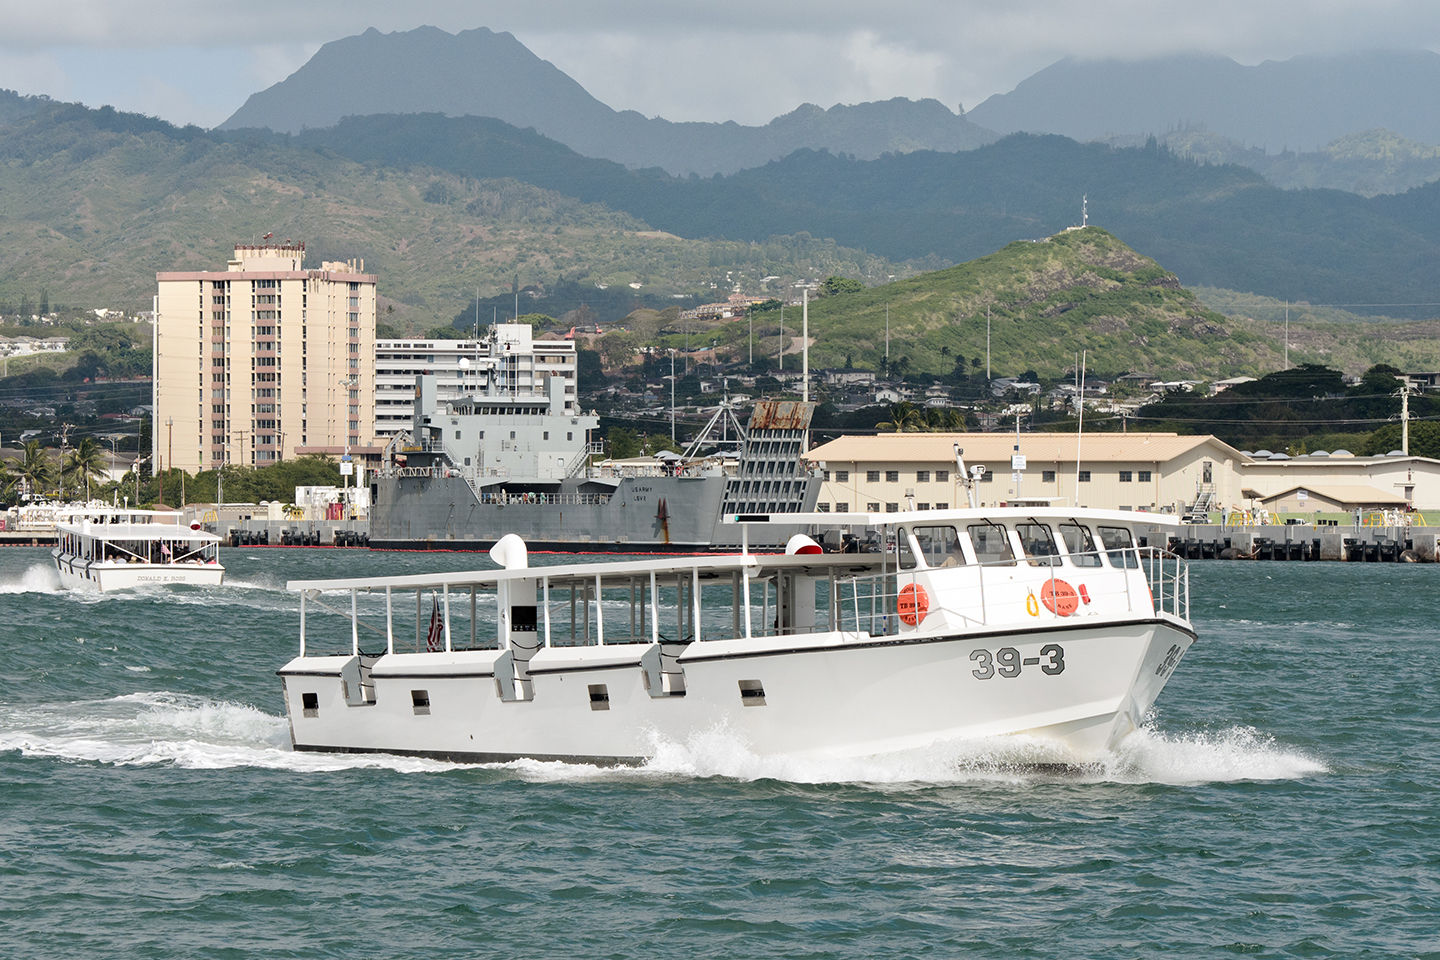 A white ferry boat heading out from a harbor on Hawaii, with another ferry heading into port behind it and high, dark mountains in the distance.